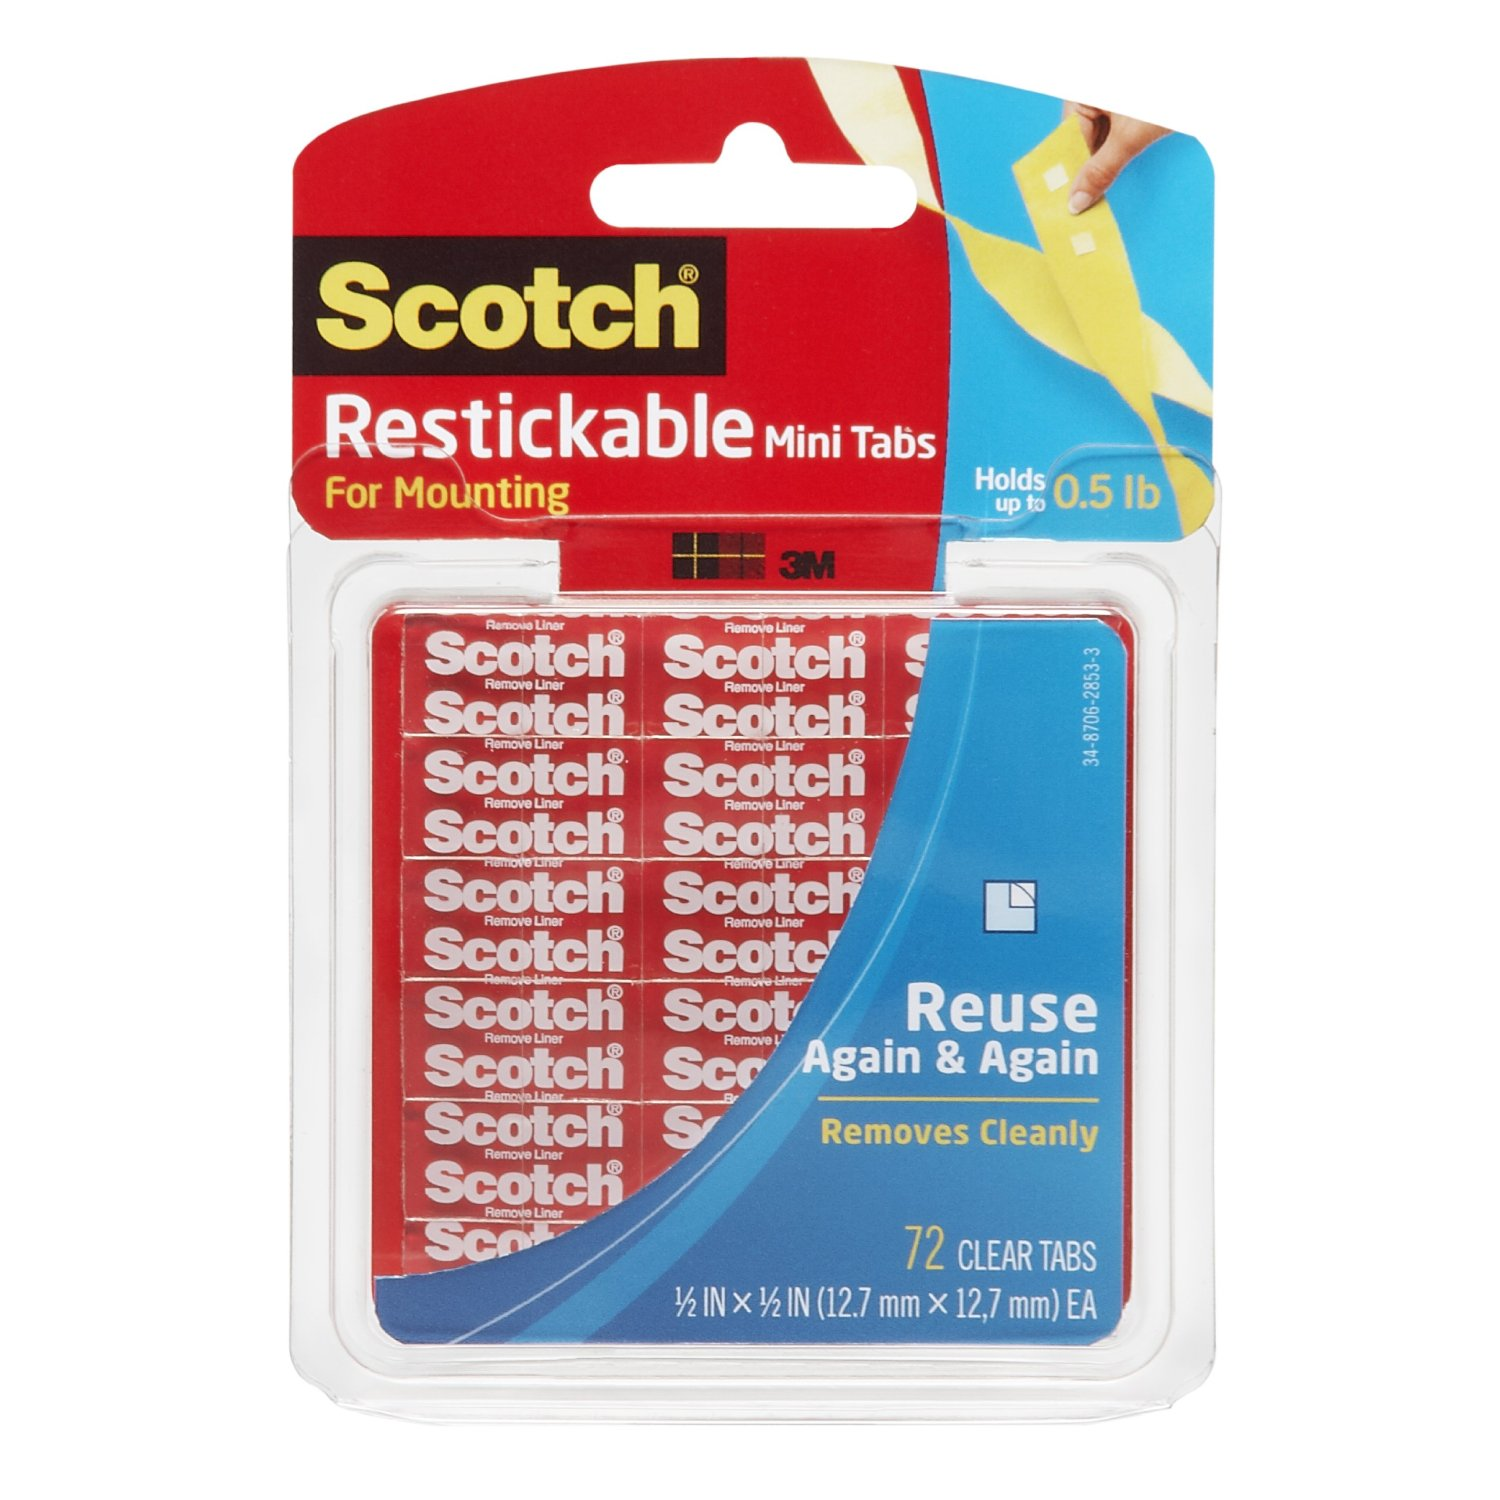 Scotch Reusable Tabs Review Connected2christ